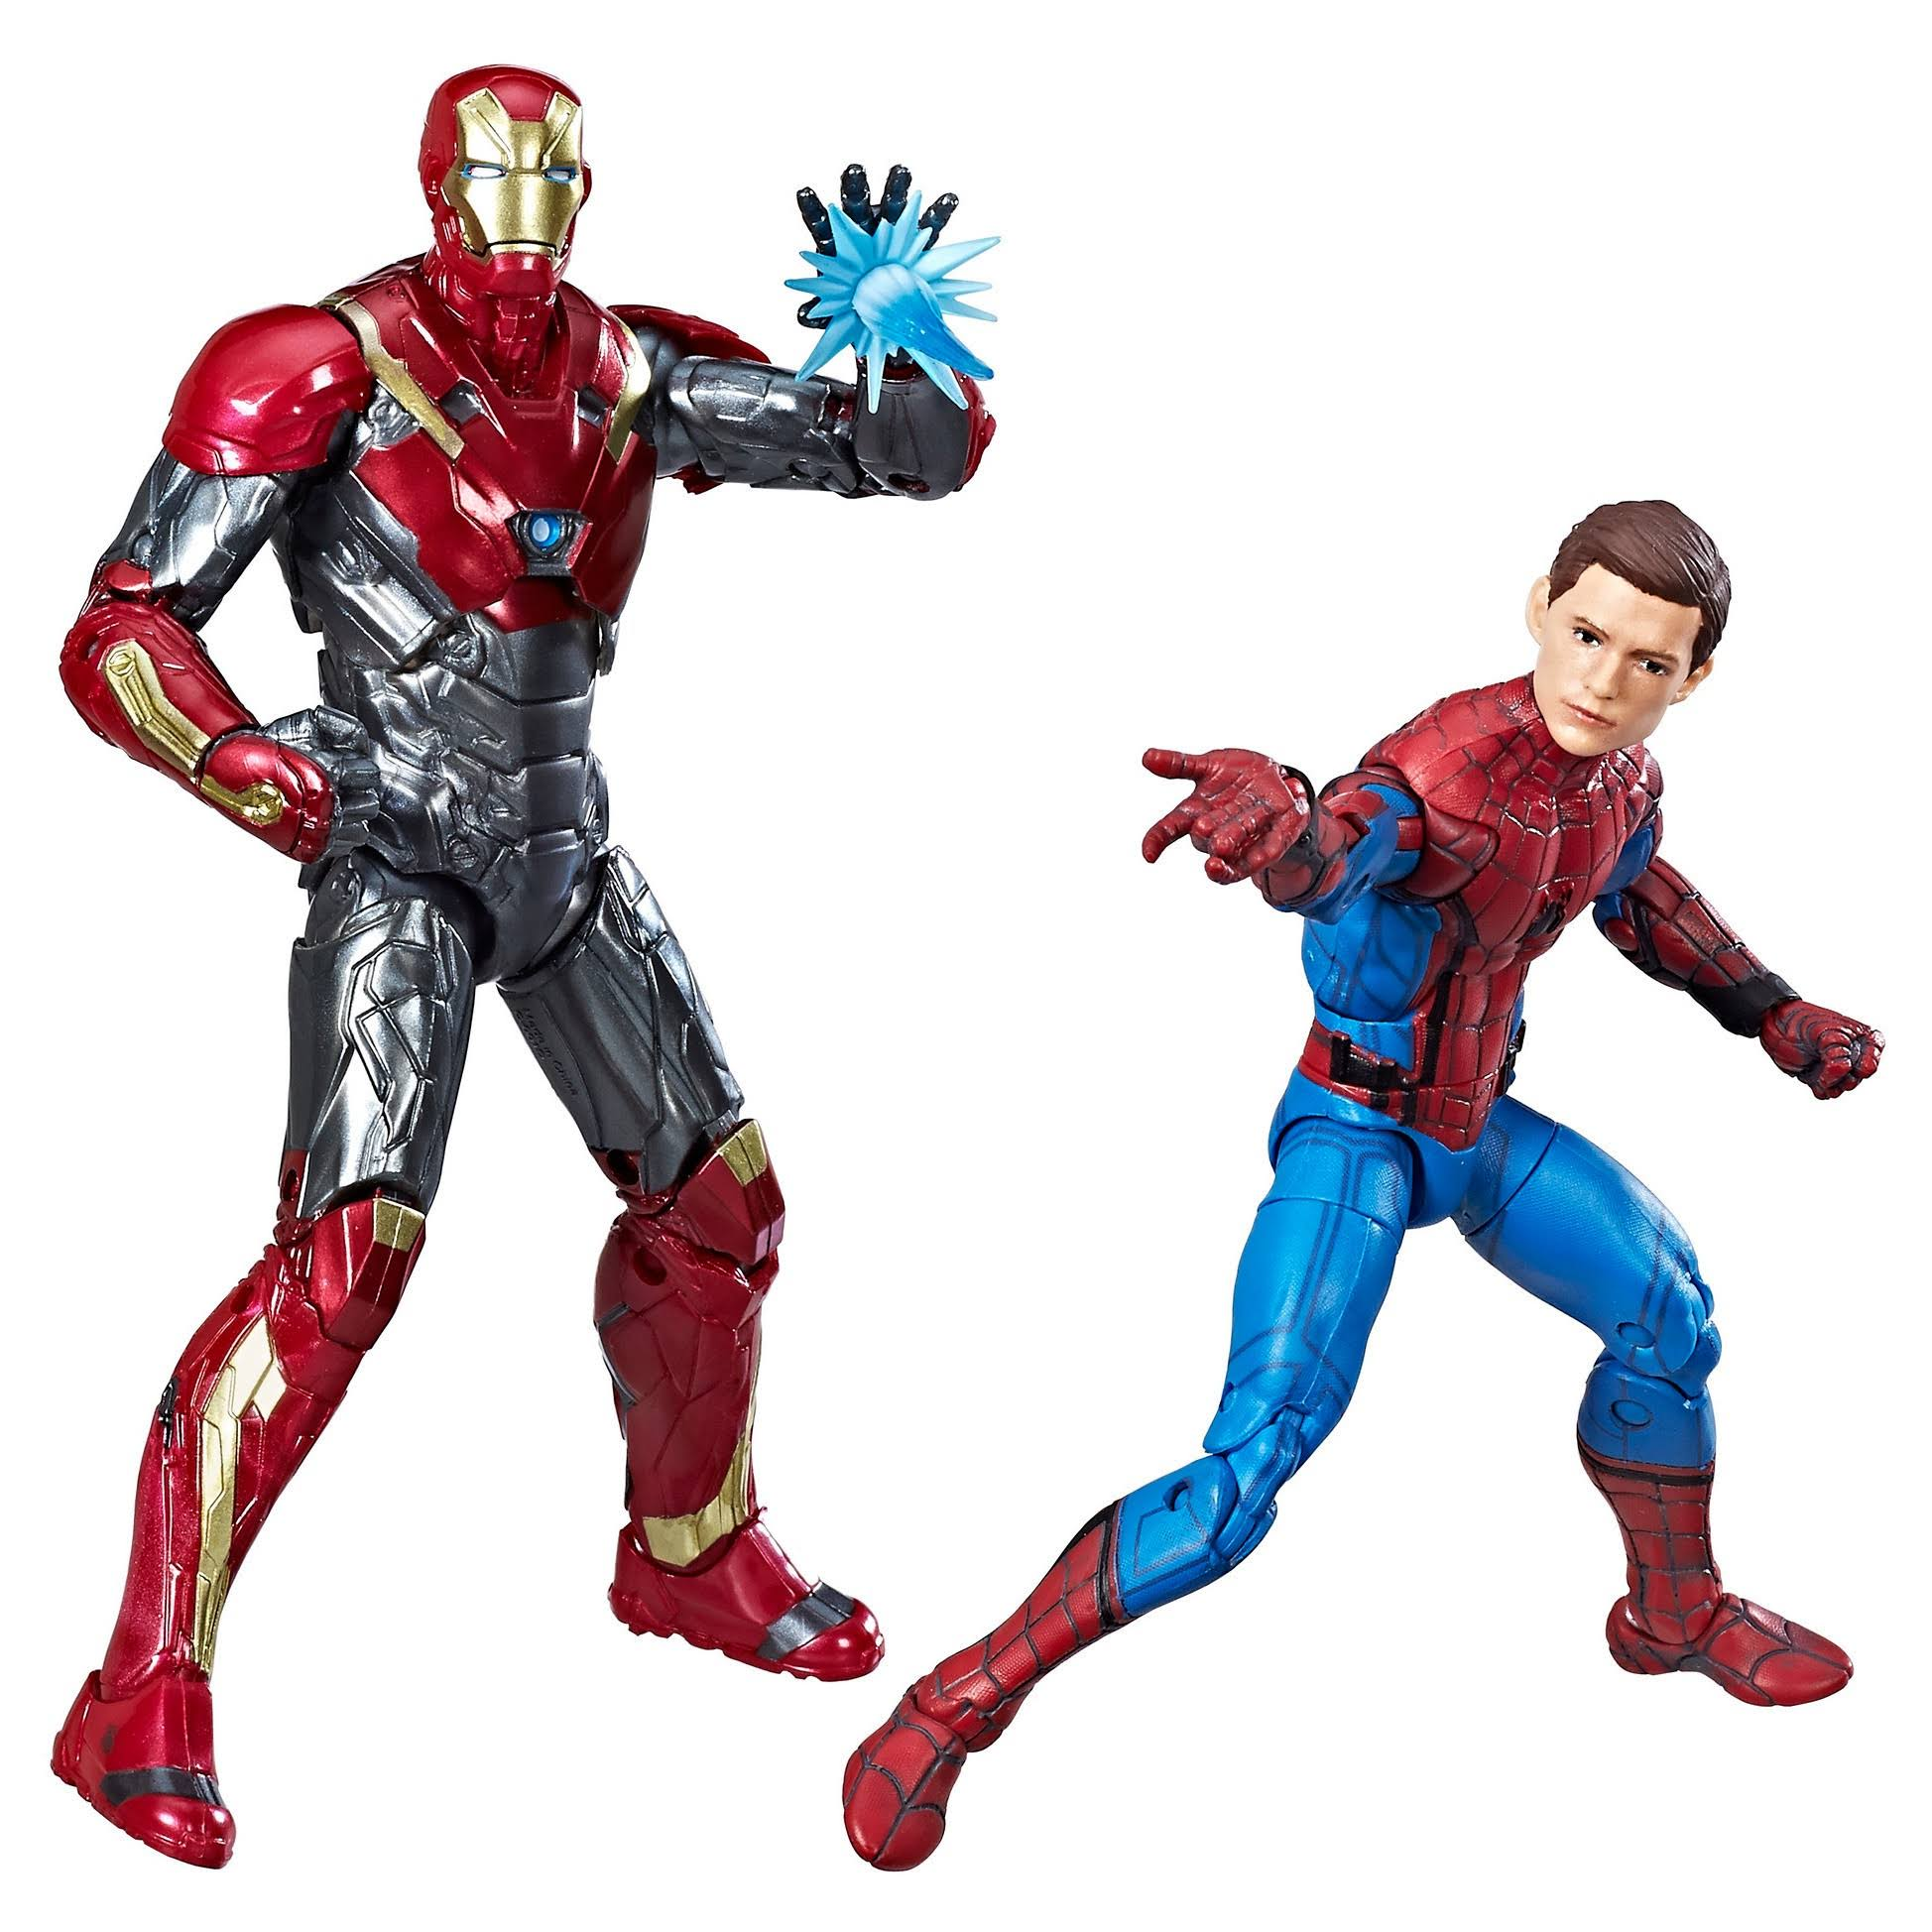 Marvel Legends Spider-man: Homecoming Action Figures - 2pk